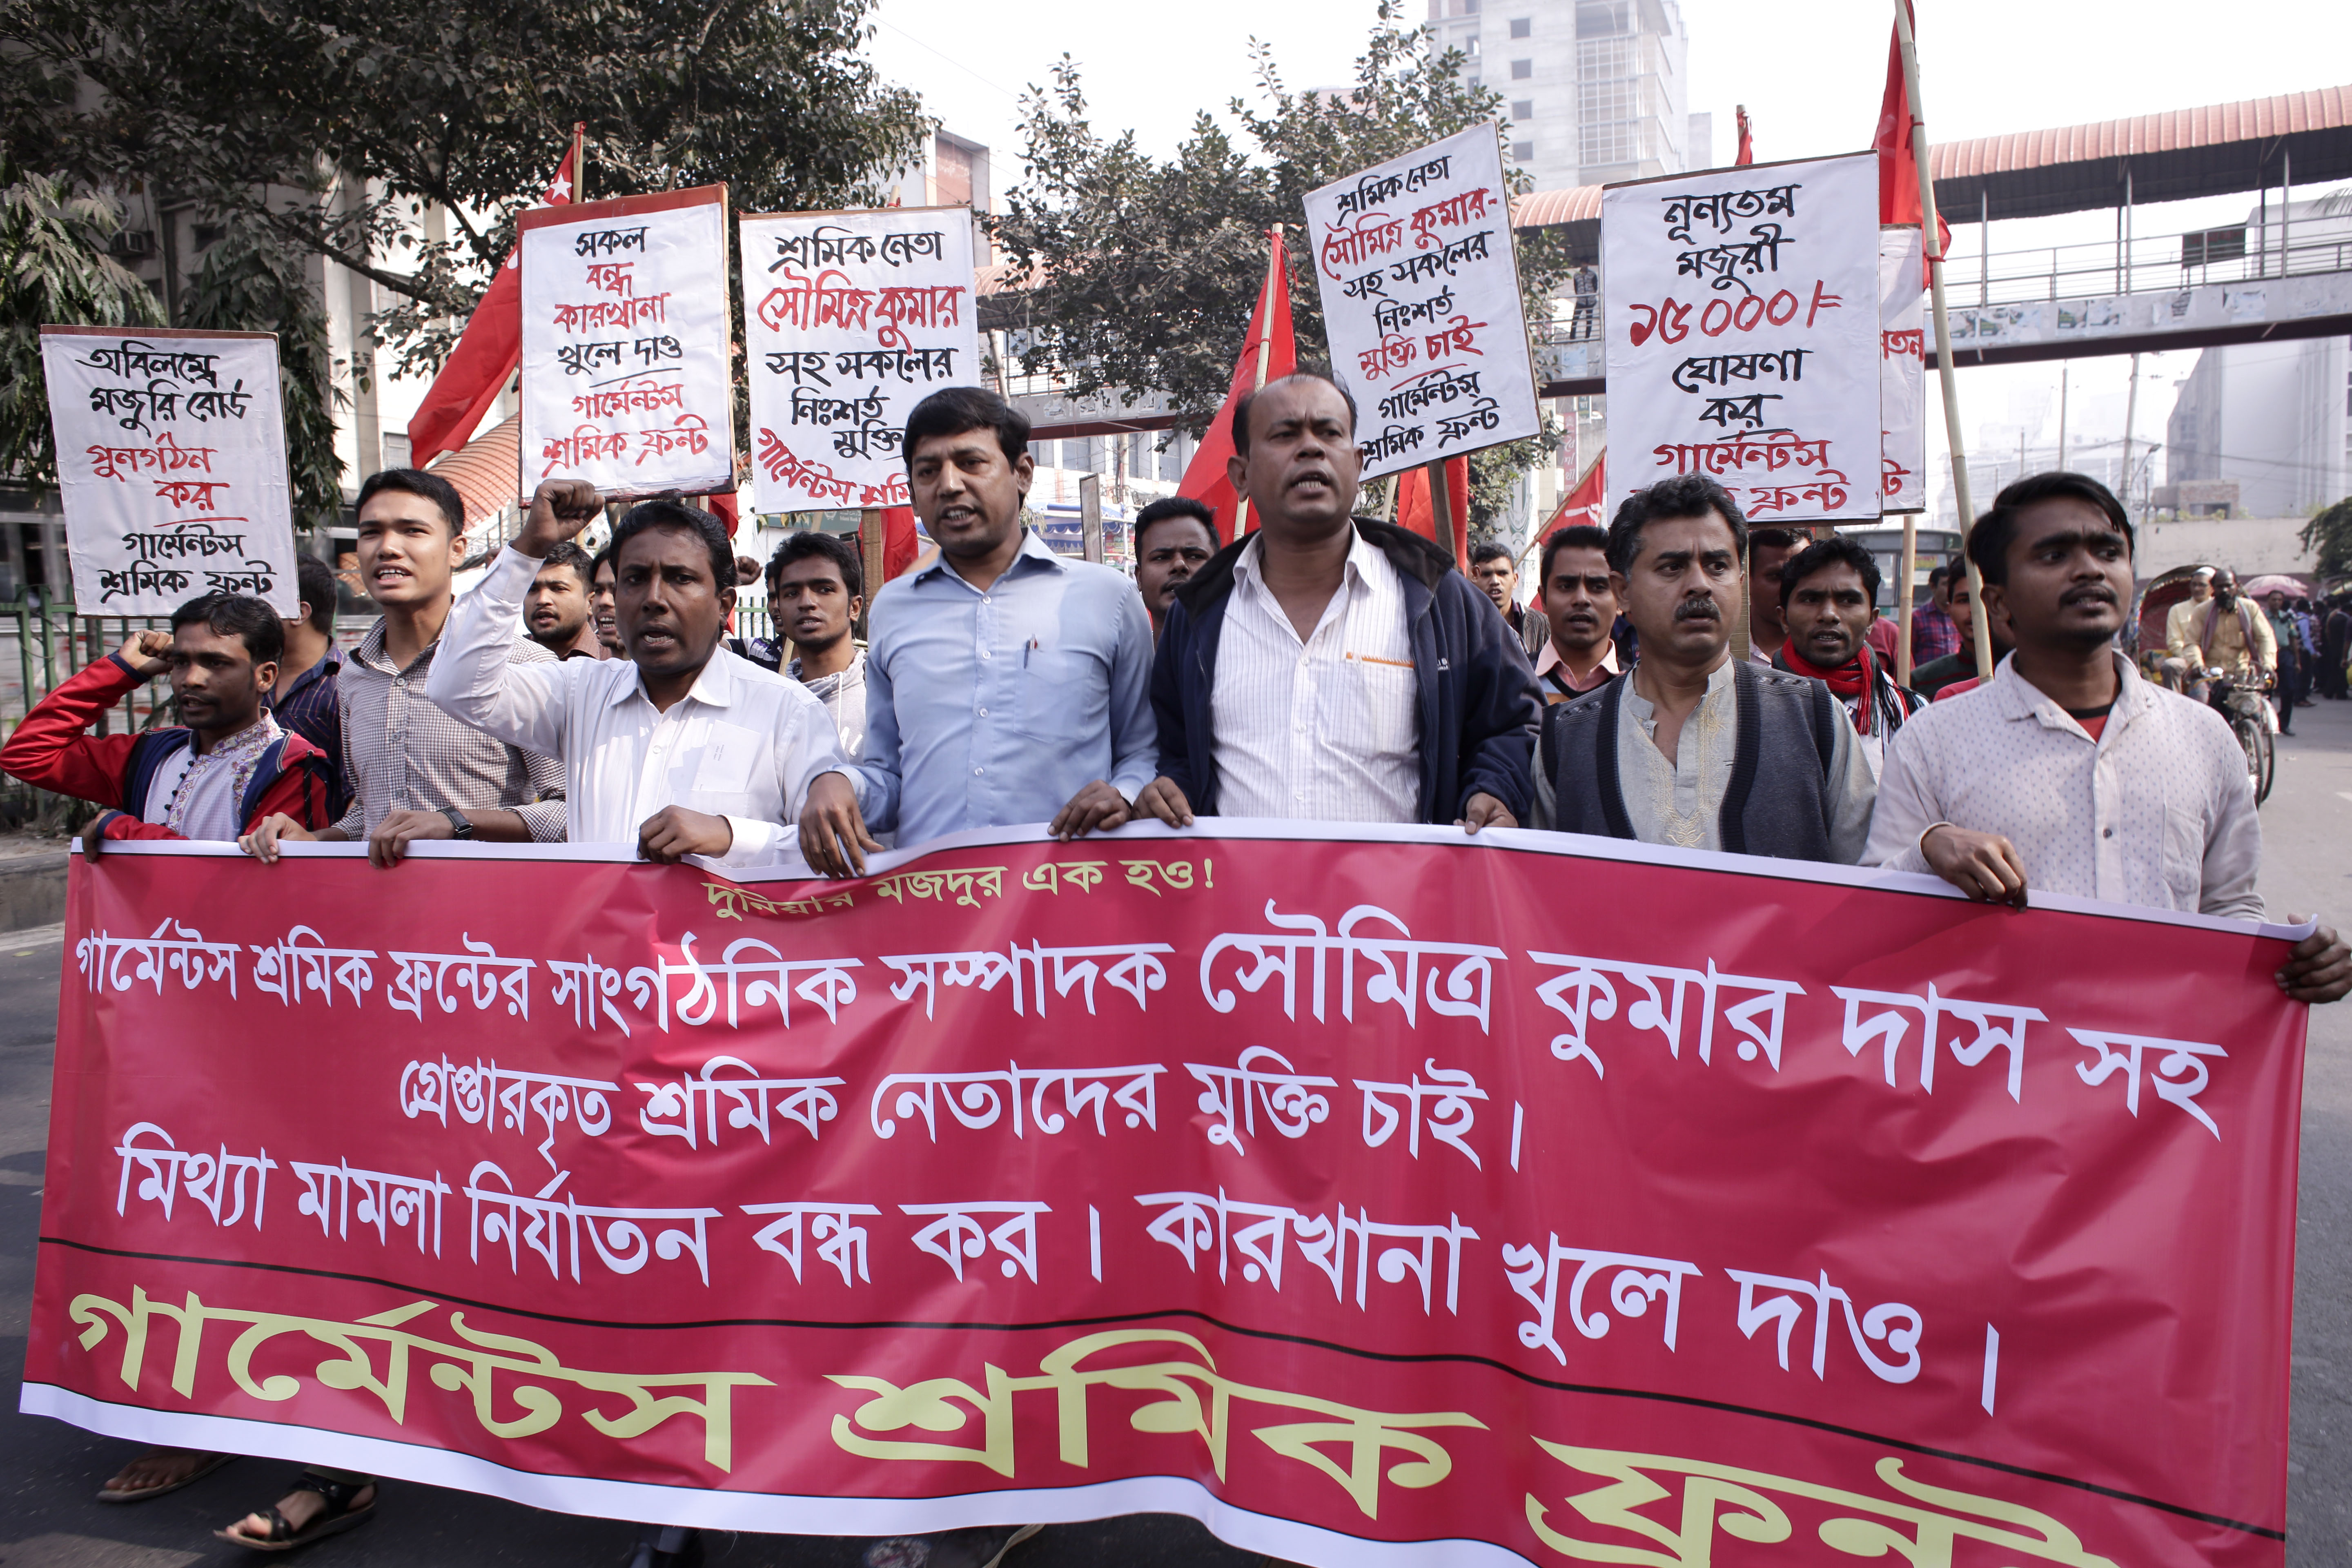 epa05686314 Workers and leaders of the Garments Sromik Front attend a rally protesting the arrests of their leaders and termination of workers from several factories following unrest in Dhaka, Bangladesh, 23 December 2016. At least 278 workers of two readymade garment factories were terminated for instigating labor unrest at Ashulia industrial belt on 21 and 22 December 2016, while the workers have been demonstrating and demanding increase of minimum wage to Euro 200 from Euro 66.25 since 11 December 2016. EPA/ABIR ABDULLAH